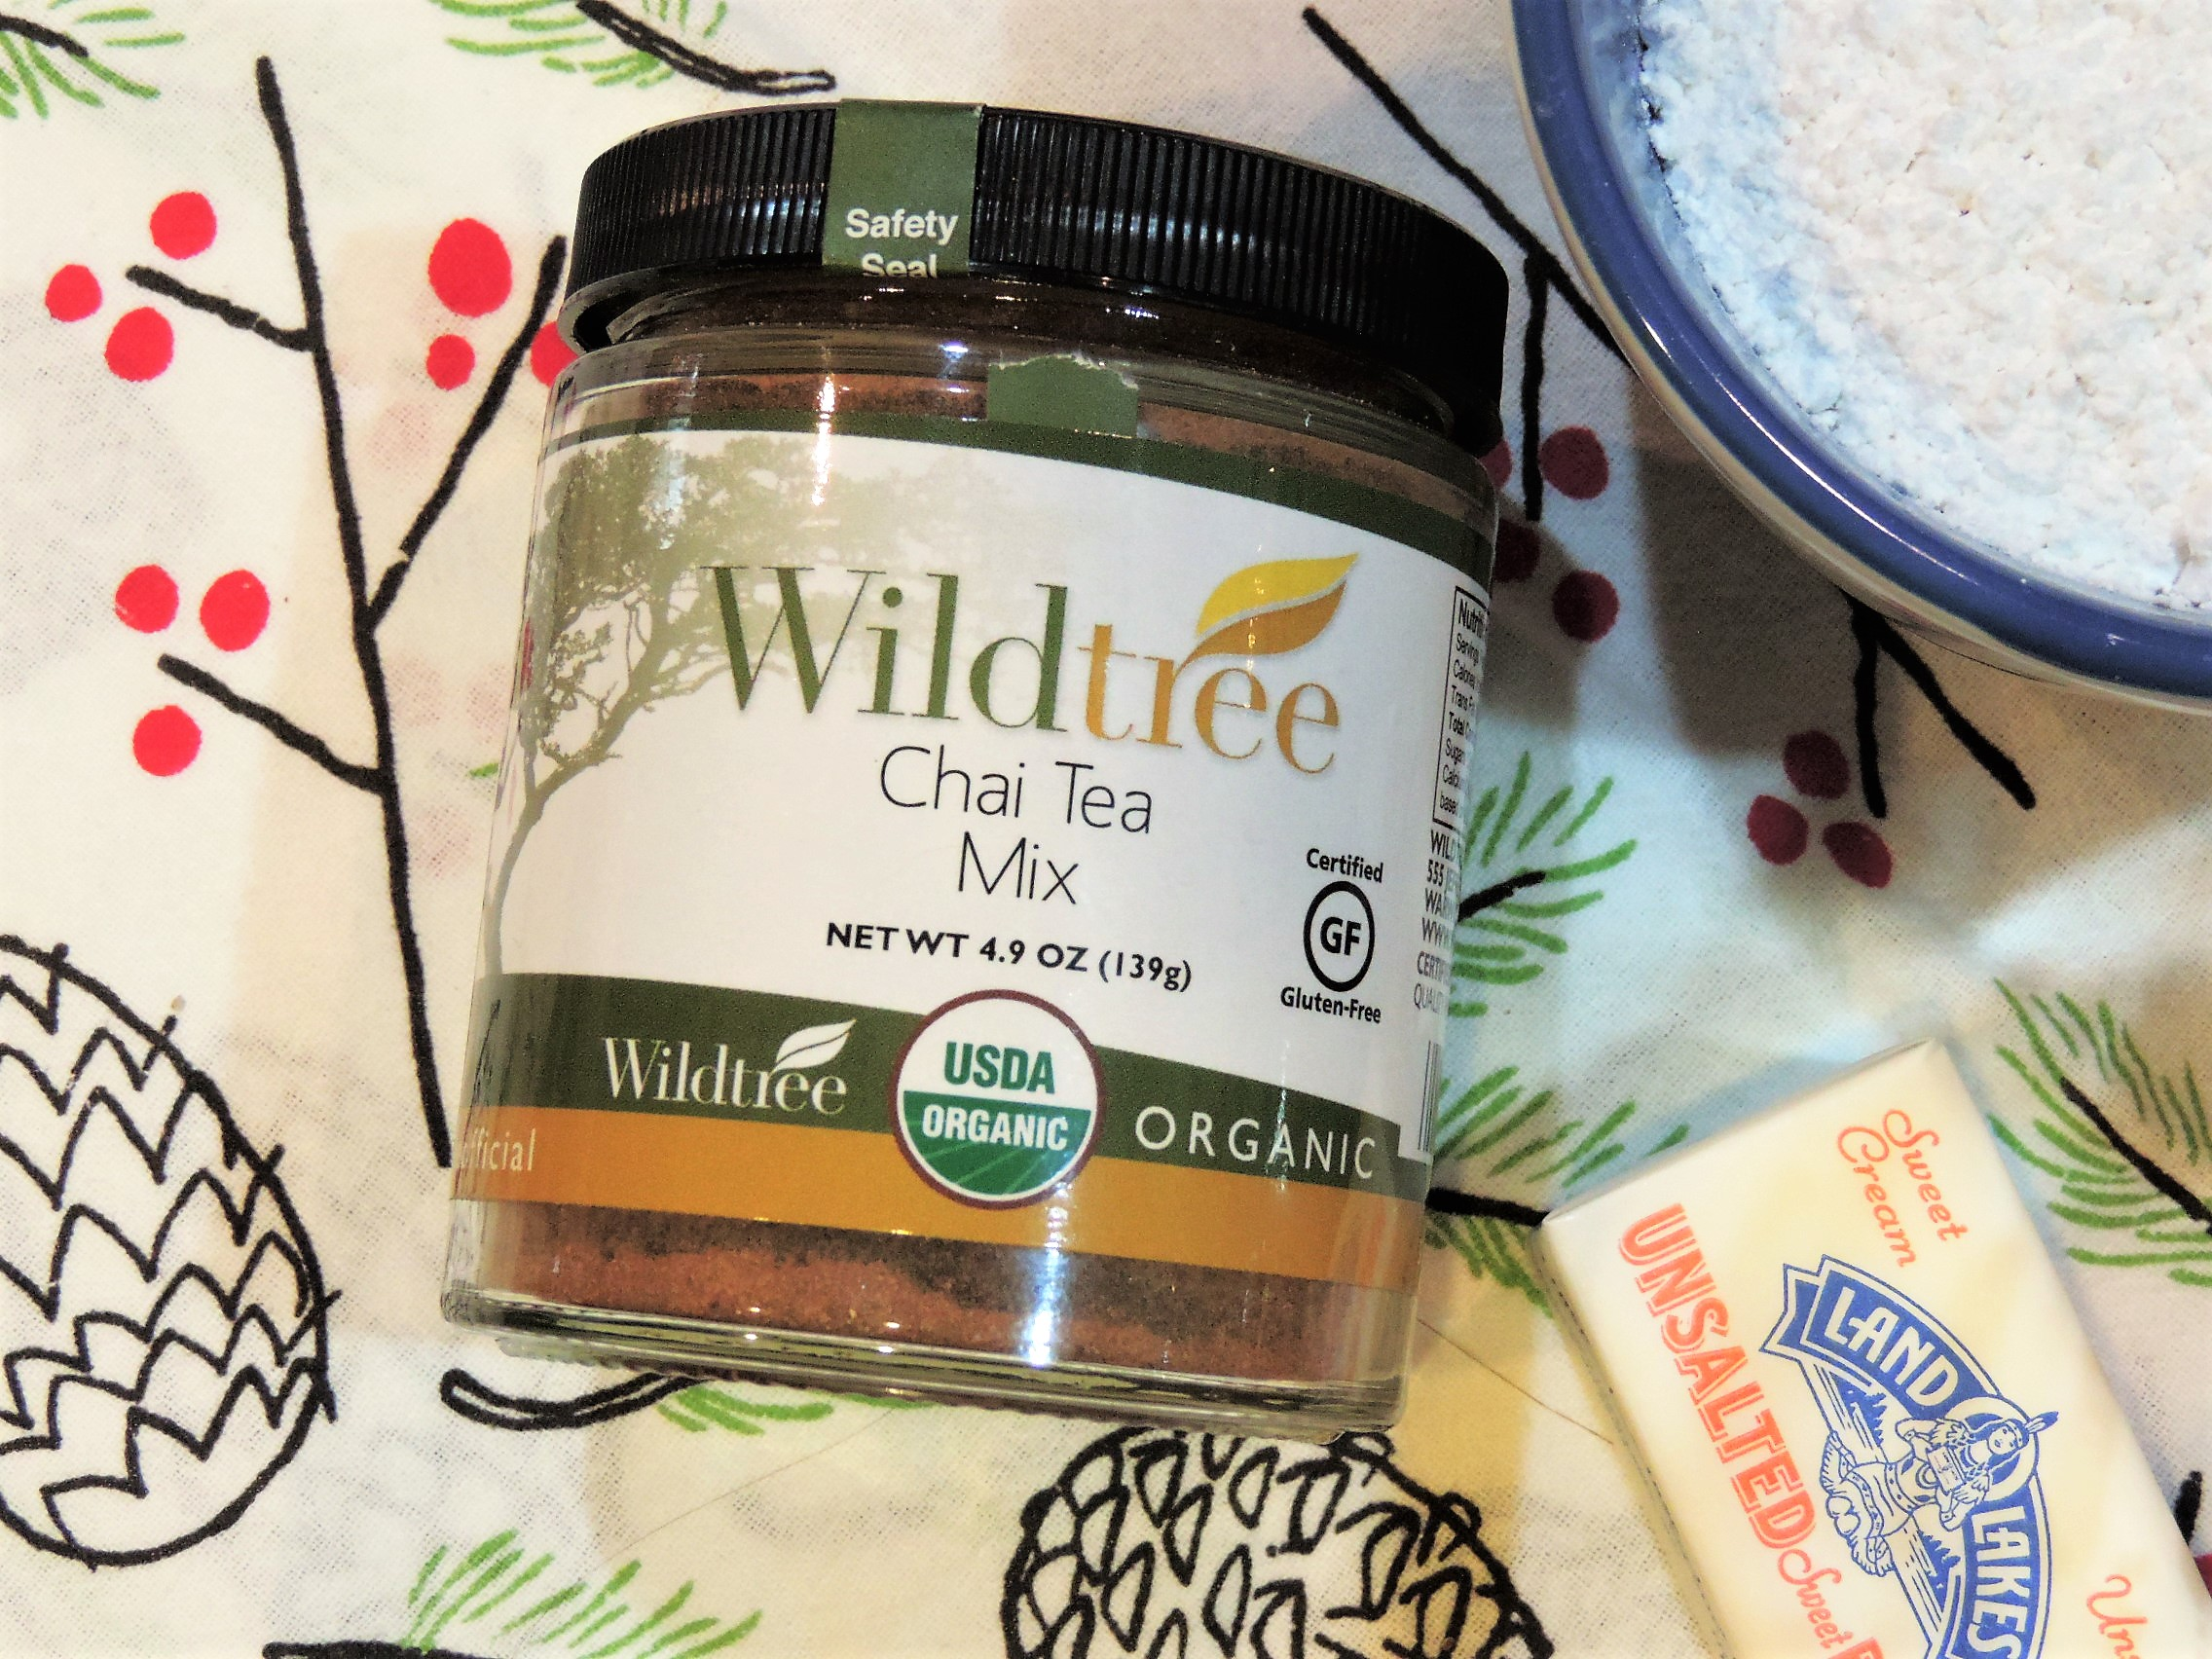 Wildtree-Chai-Tea-Mix